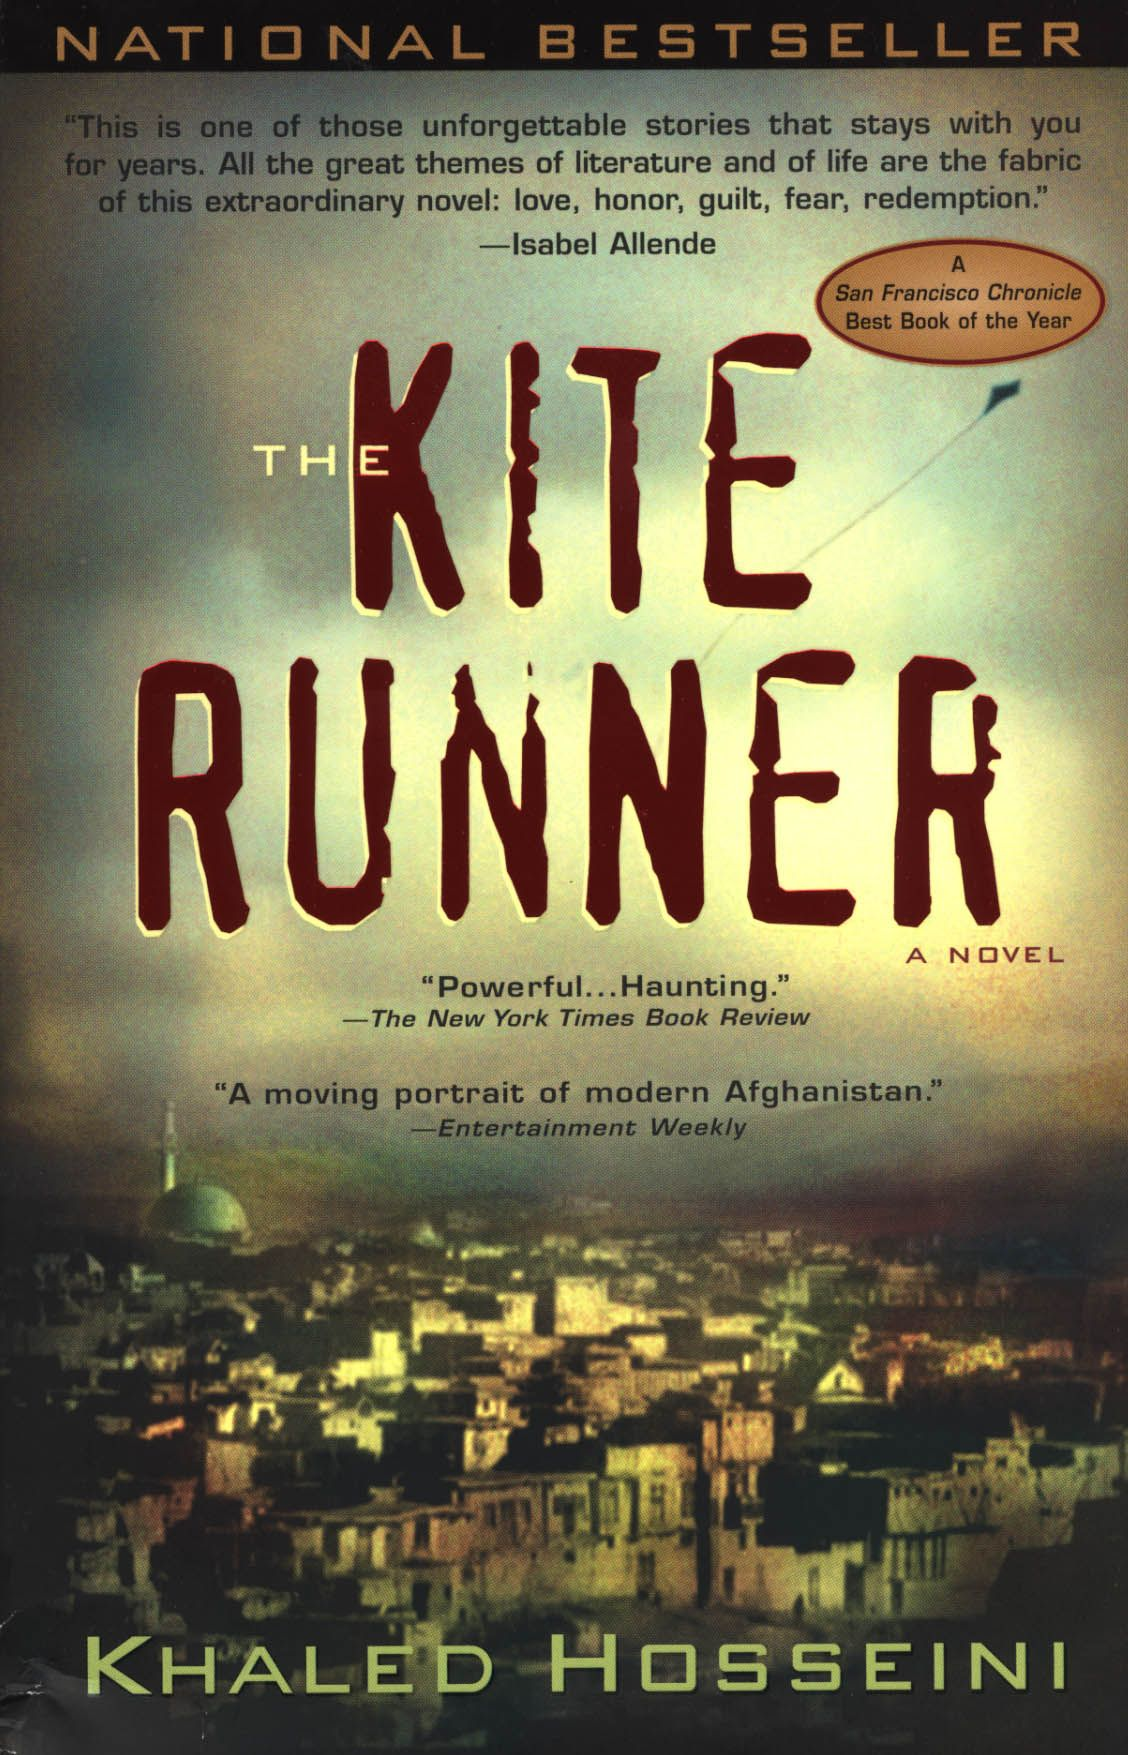 best images about a thousand splendid suns the kite runner on 17 best images about a thousand splendid suns the kite runner